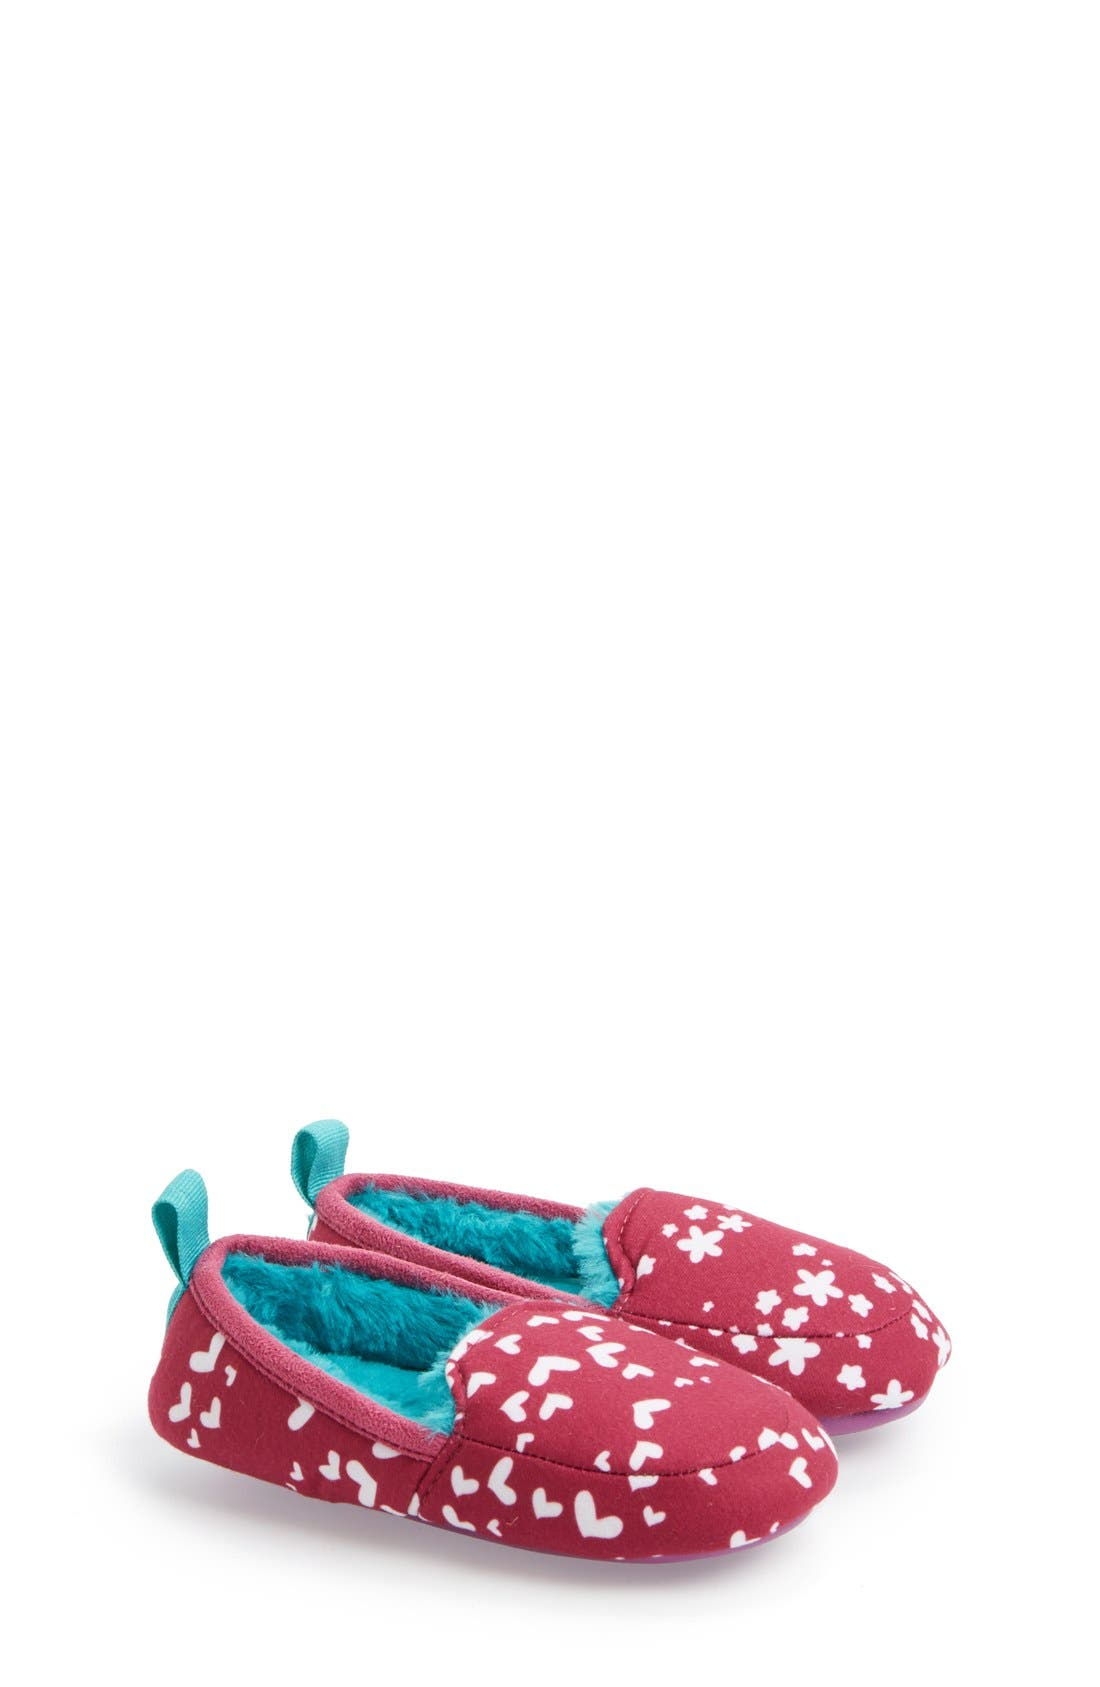 'Slumber' Slippers,                             Main thumbnail 20, color,